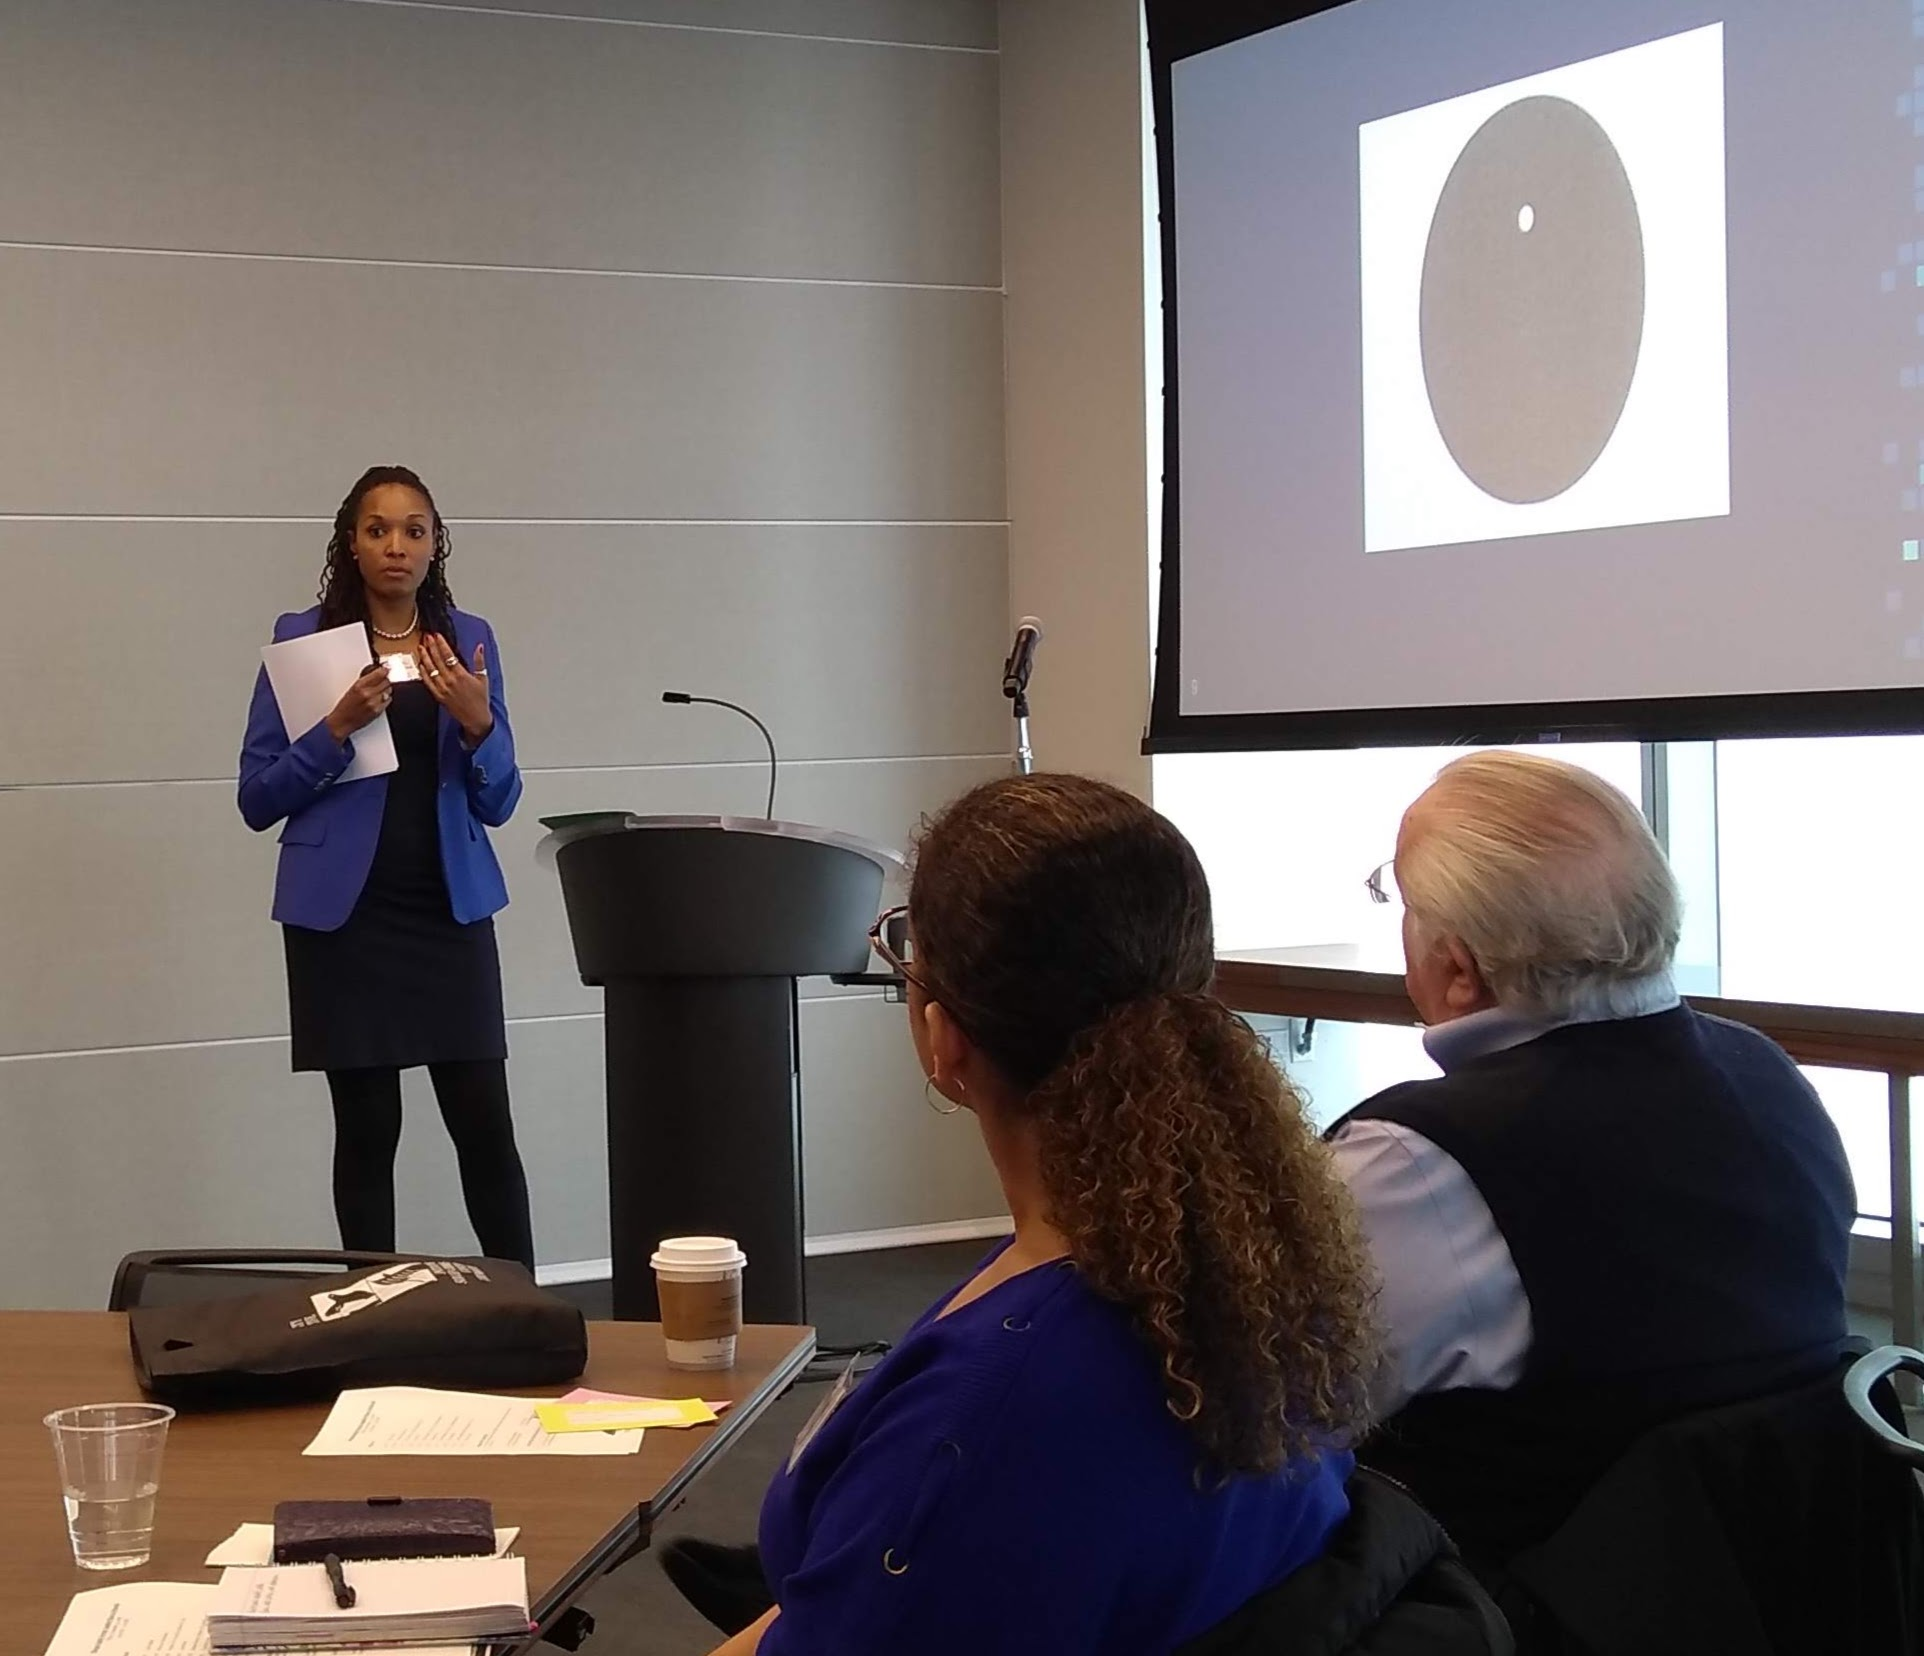 Dr. Chala Holland uses personal narrative, visuals, and key quotations from the literature on implicit bias in her afternoon breakout sessions.